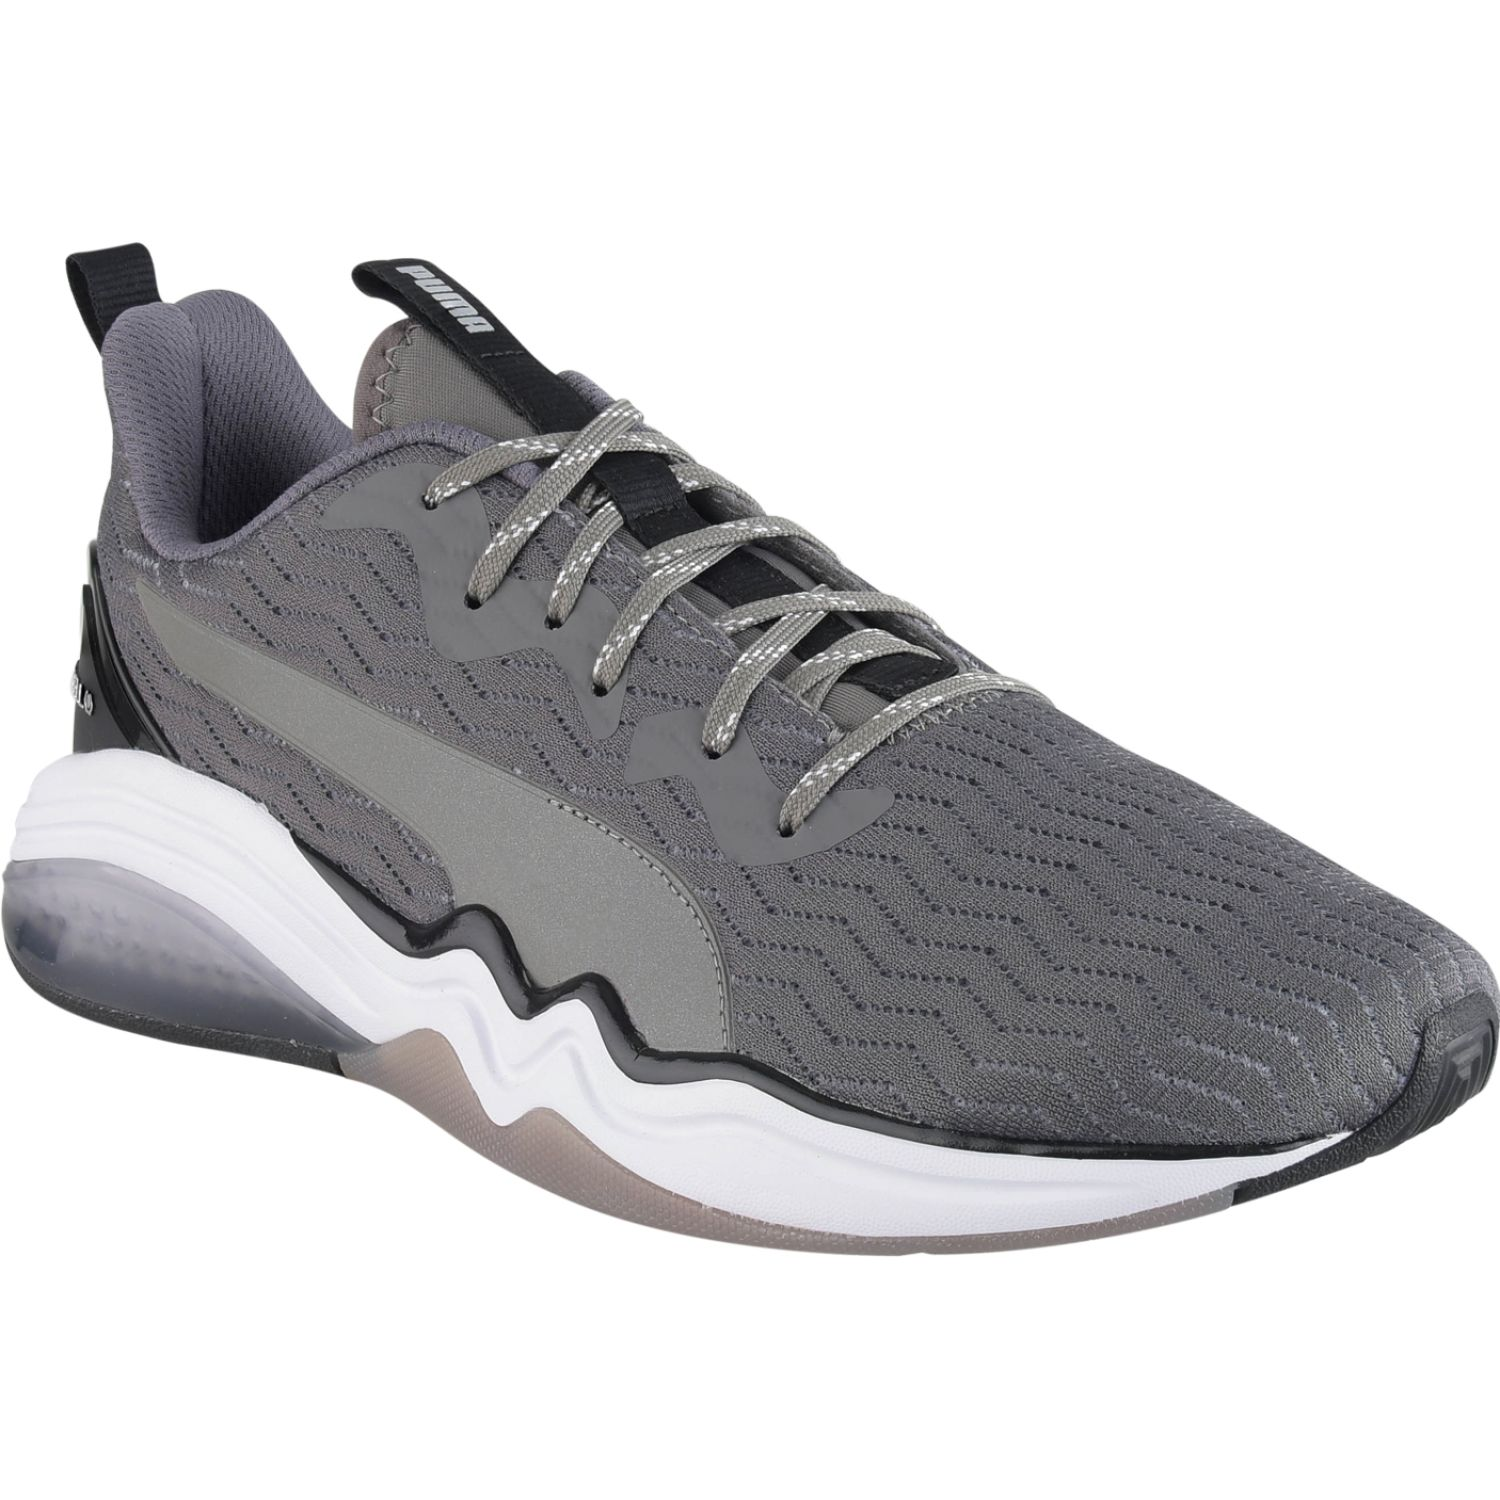 Puma Lqdcell Tension Rave Gris / blanco Hombres